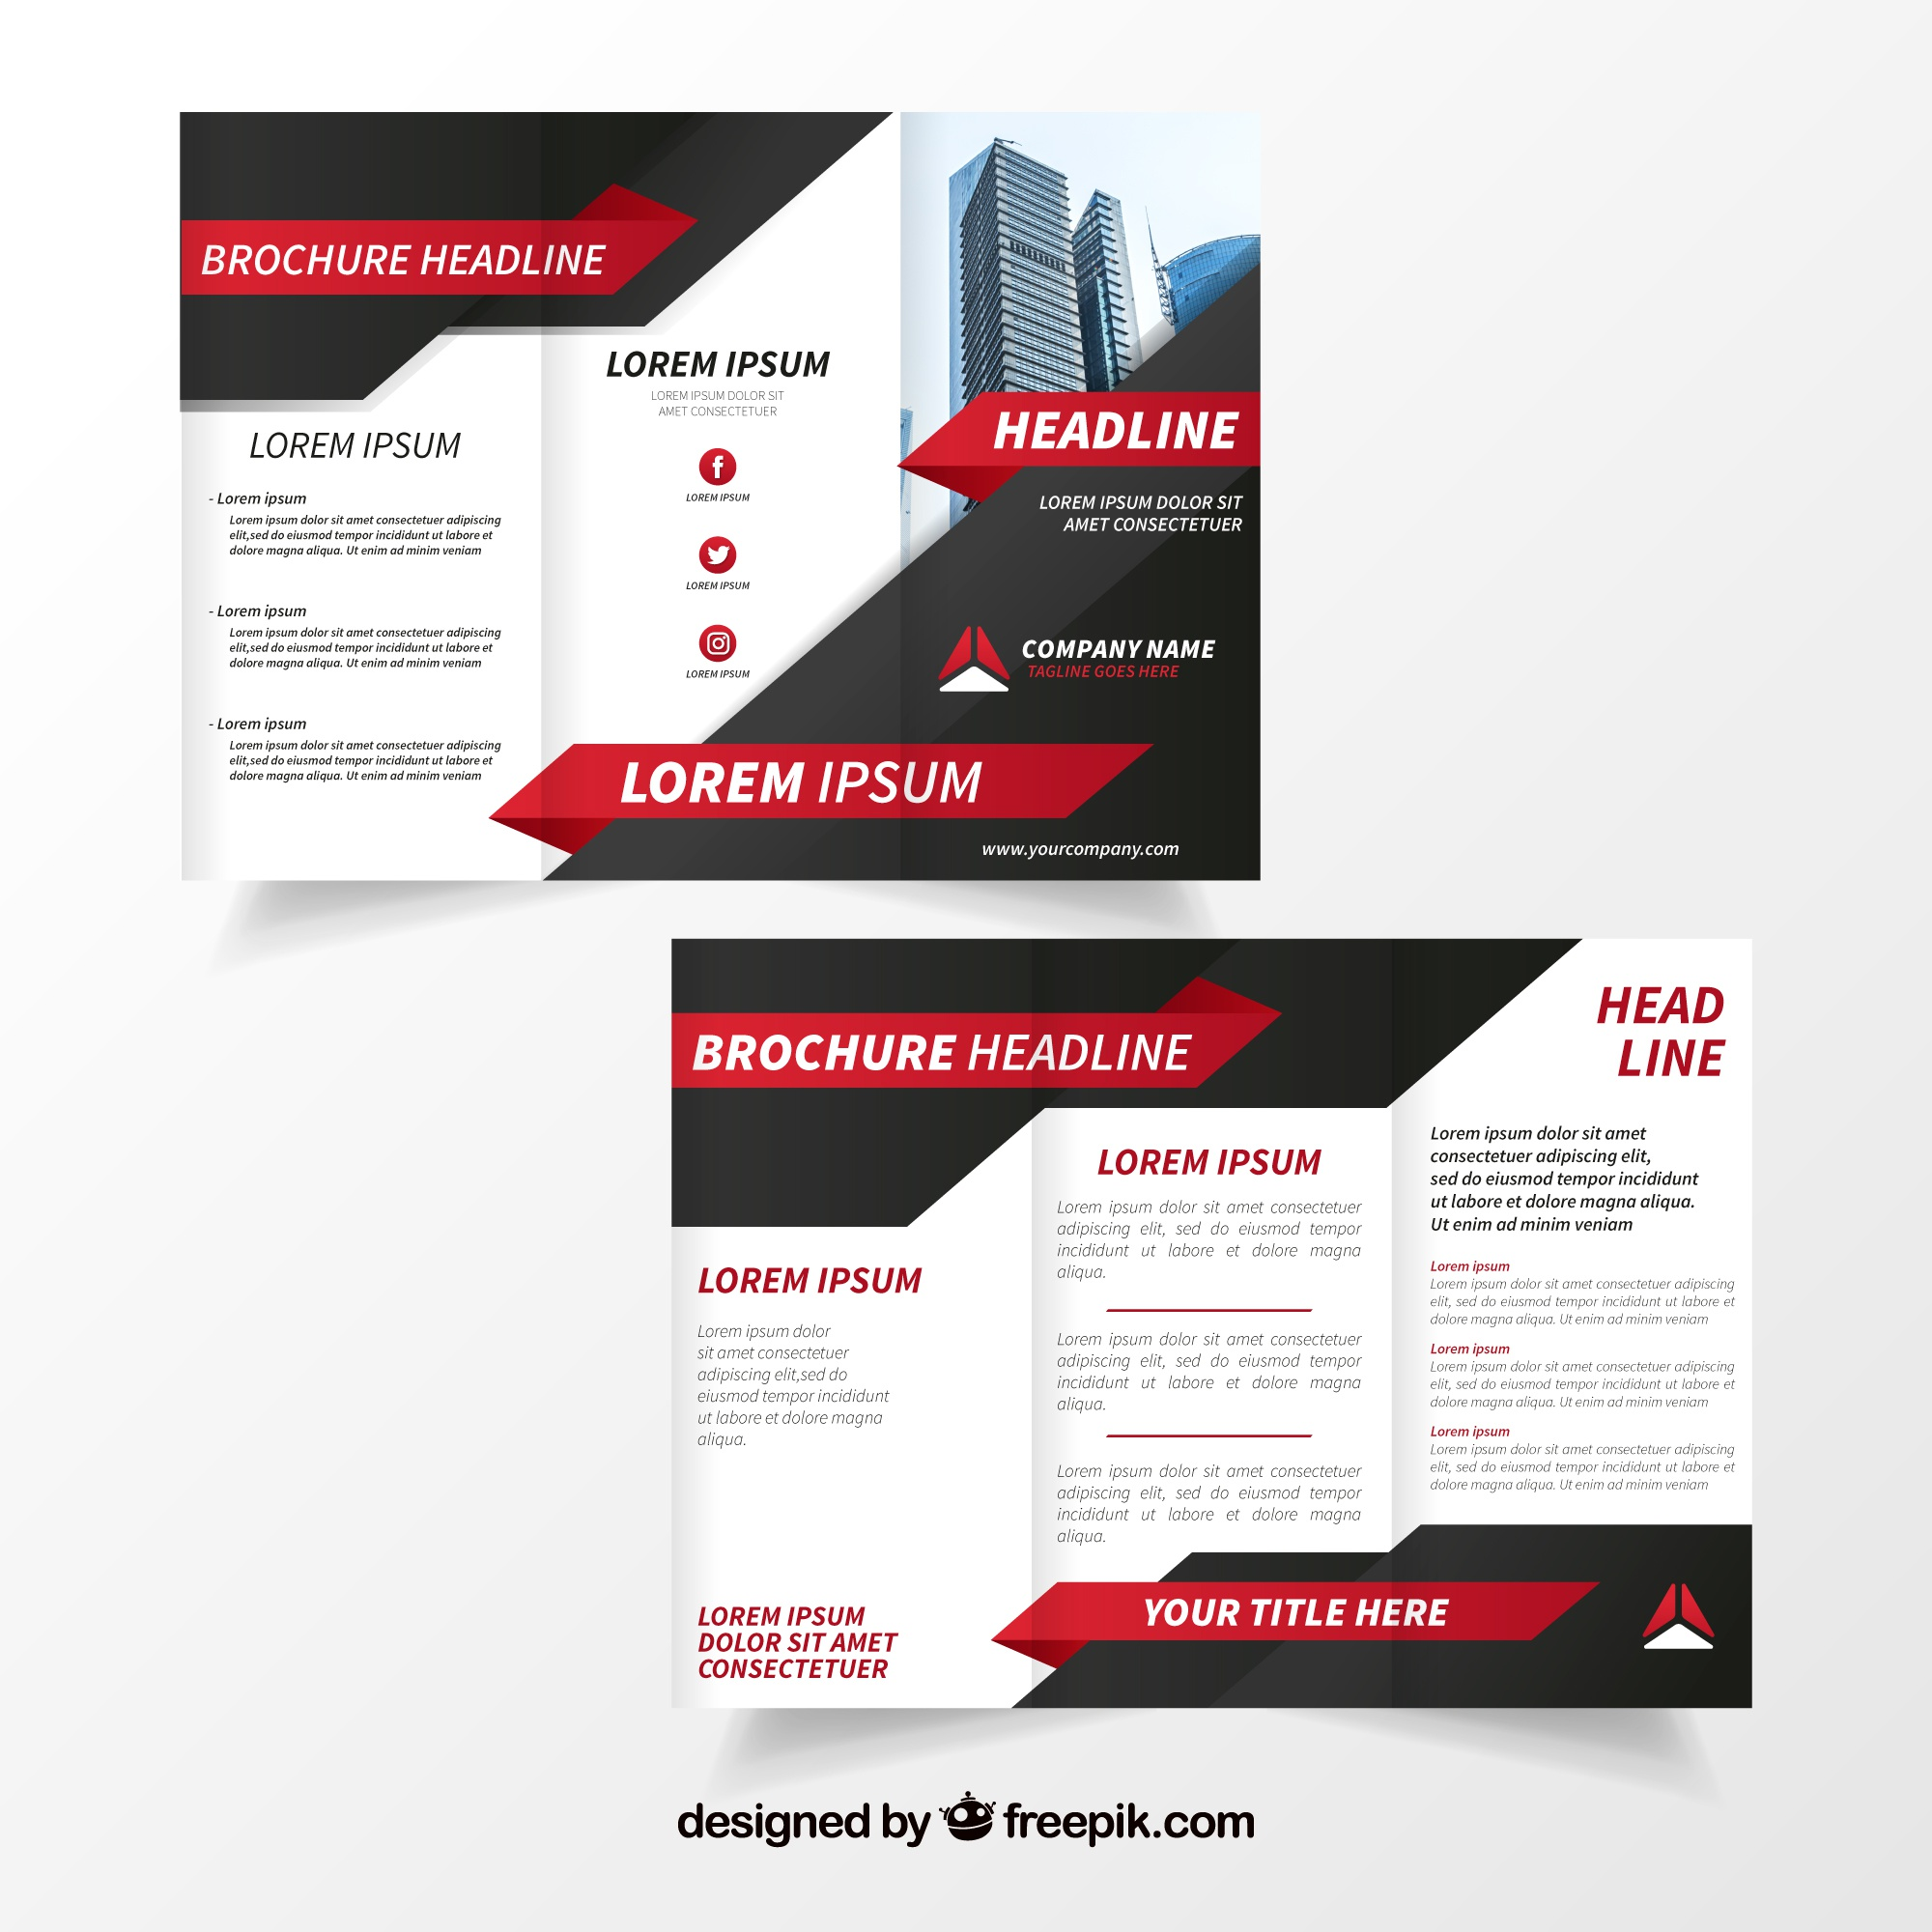 Black and white business brochure with red details